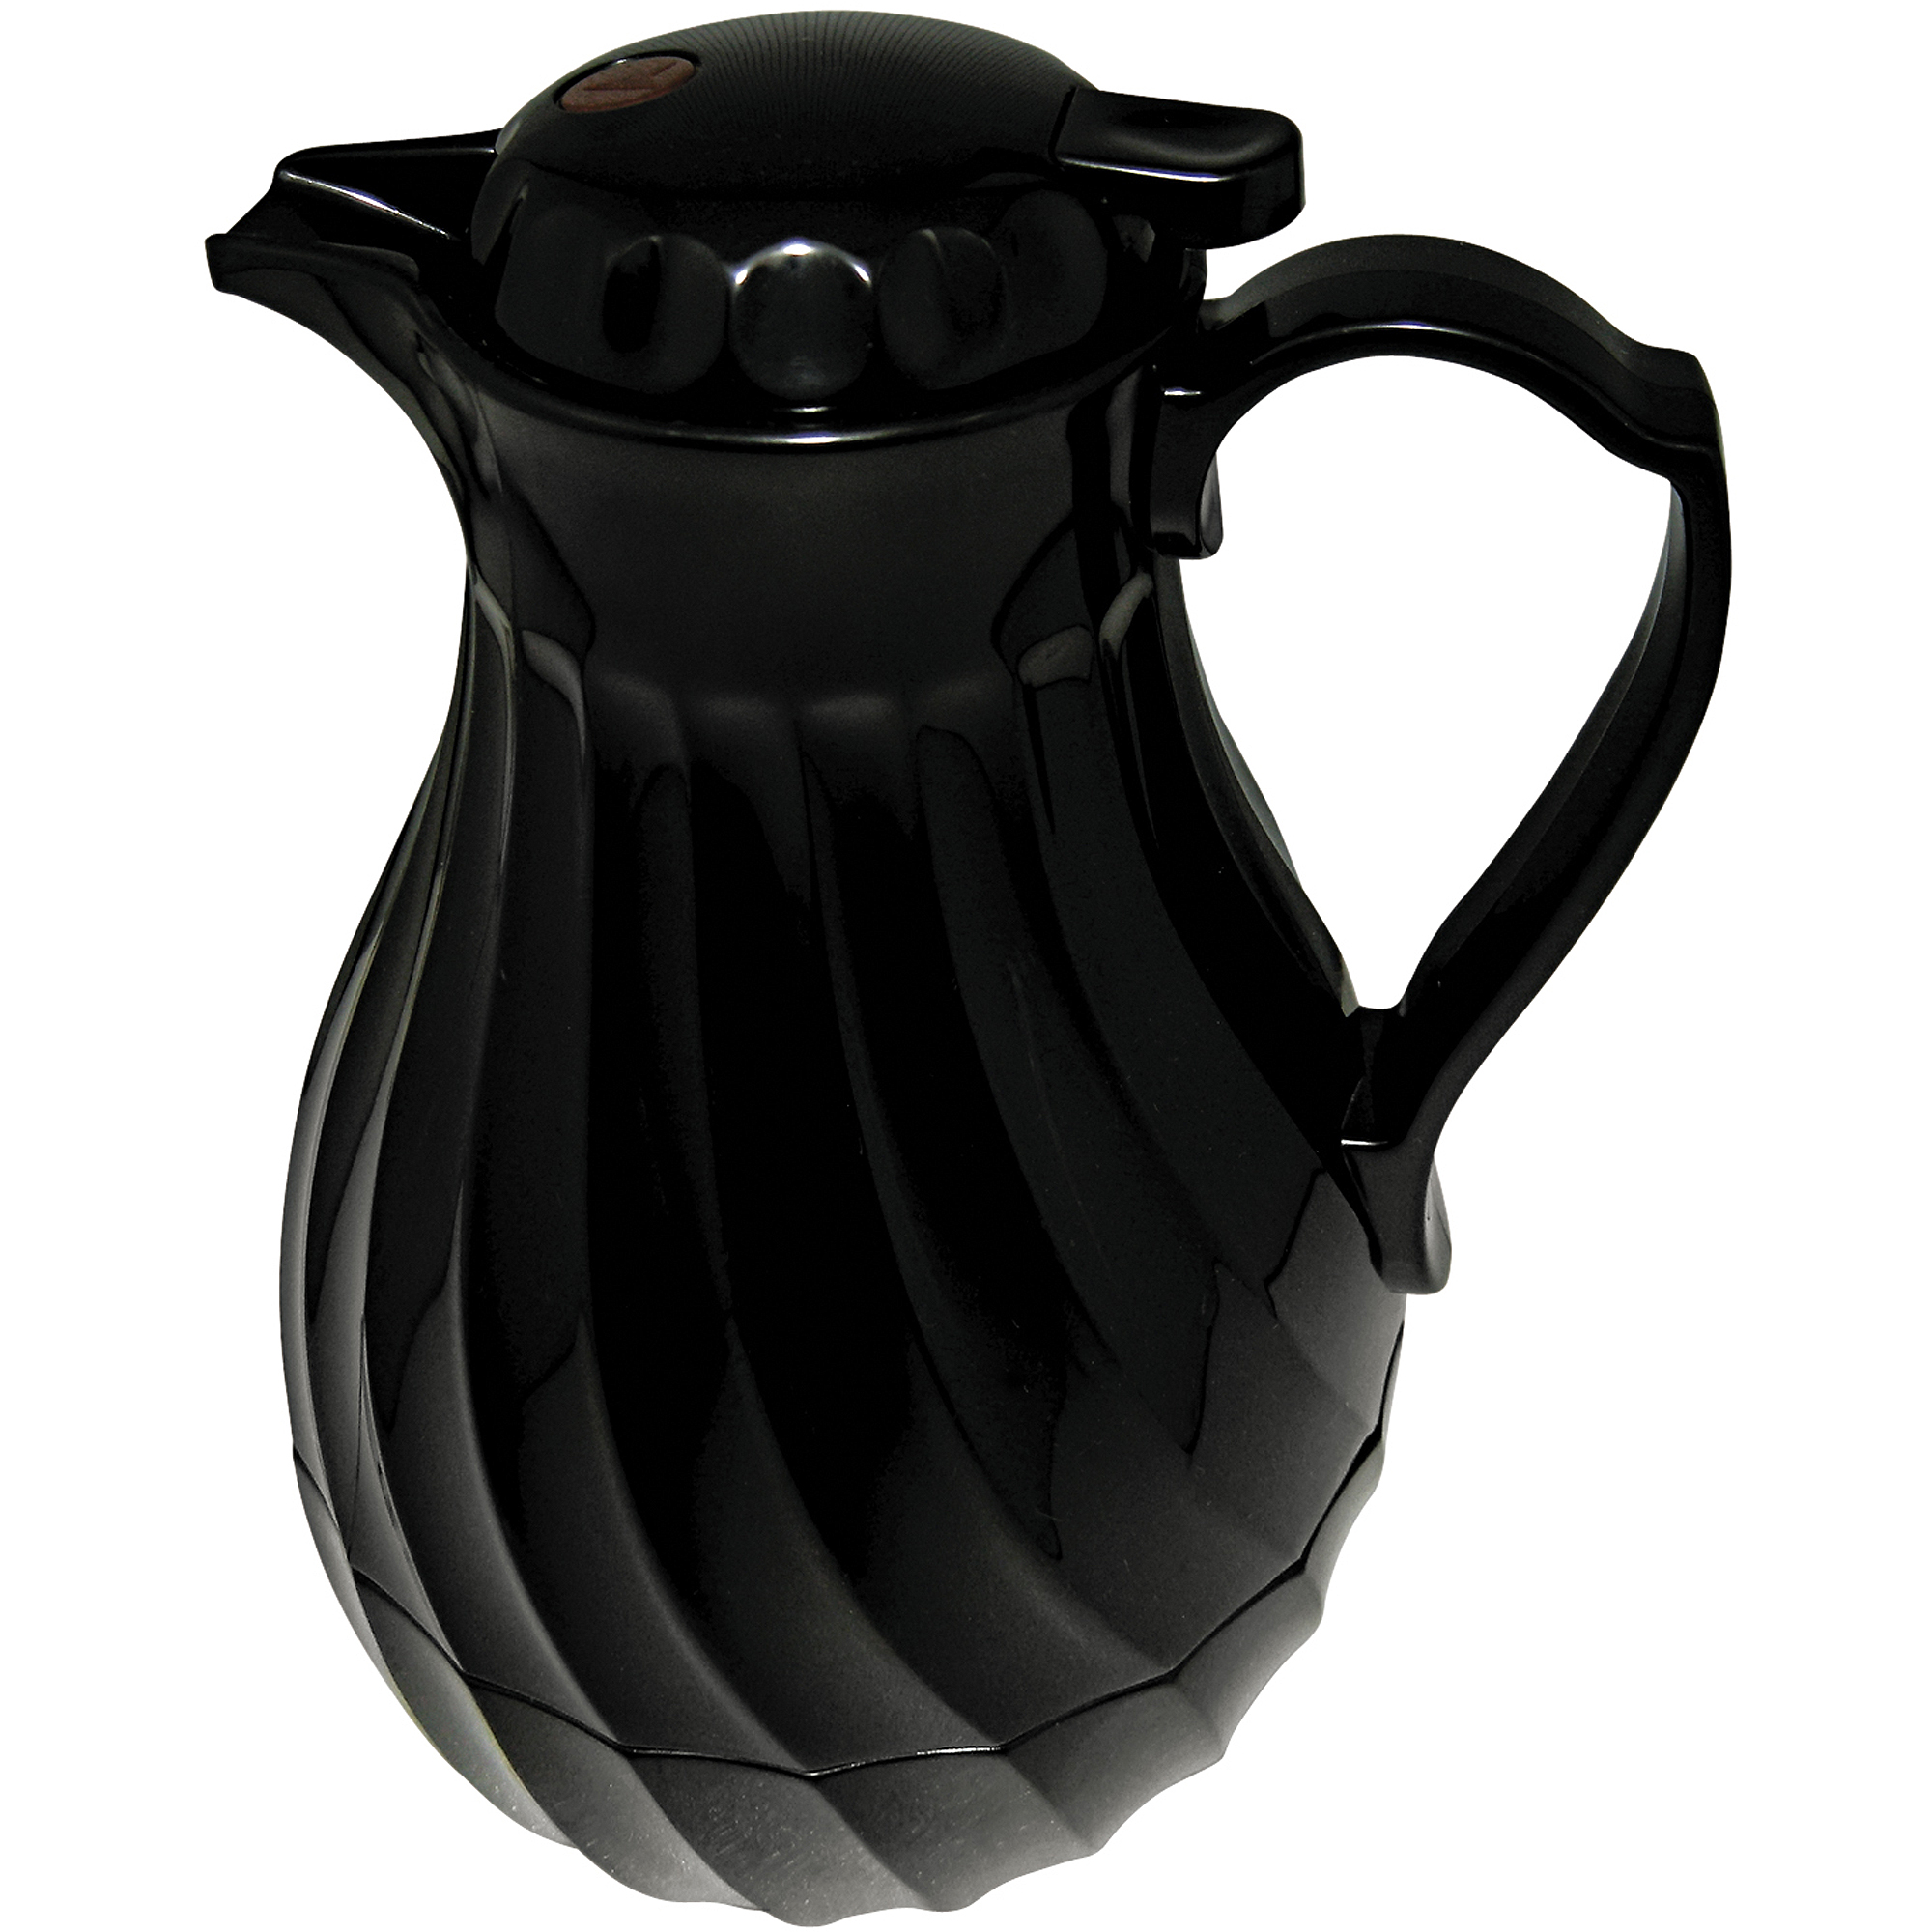 Hormel Black Swirl Design Poly Lined Carafe, 40 fl oz